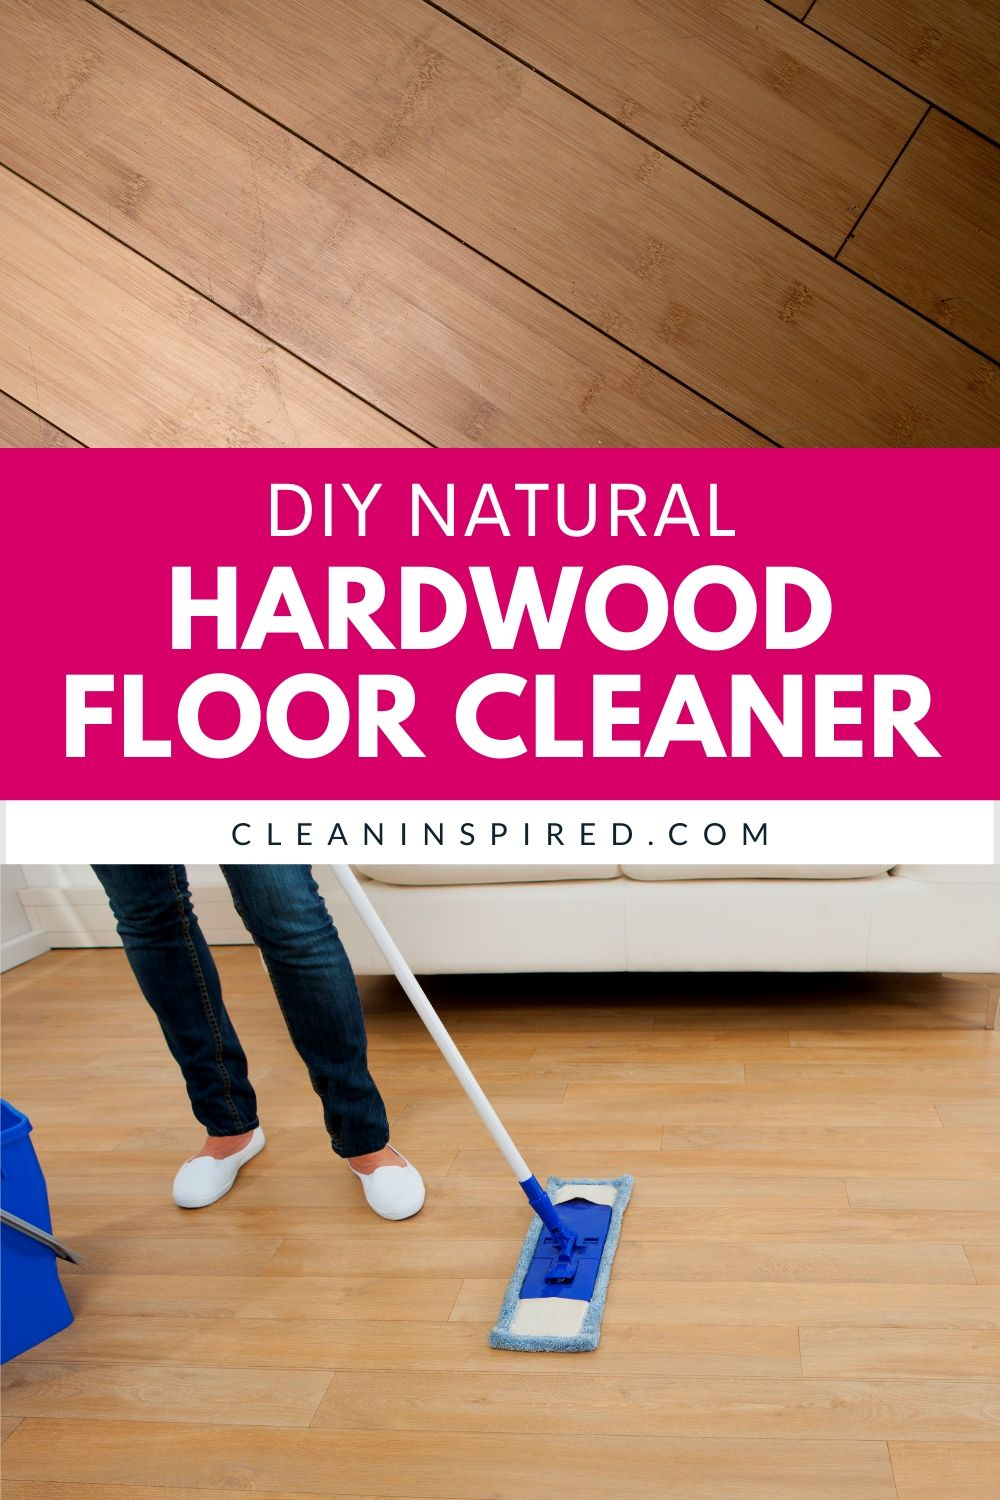 Natural Hardwood Floor Cleaner In 2020 Floor Cleaner Hardwood Floor Cleaner Hardwood Floors